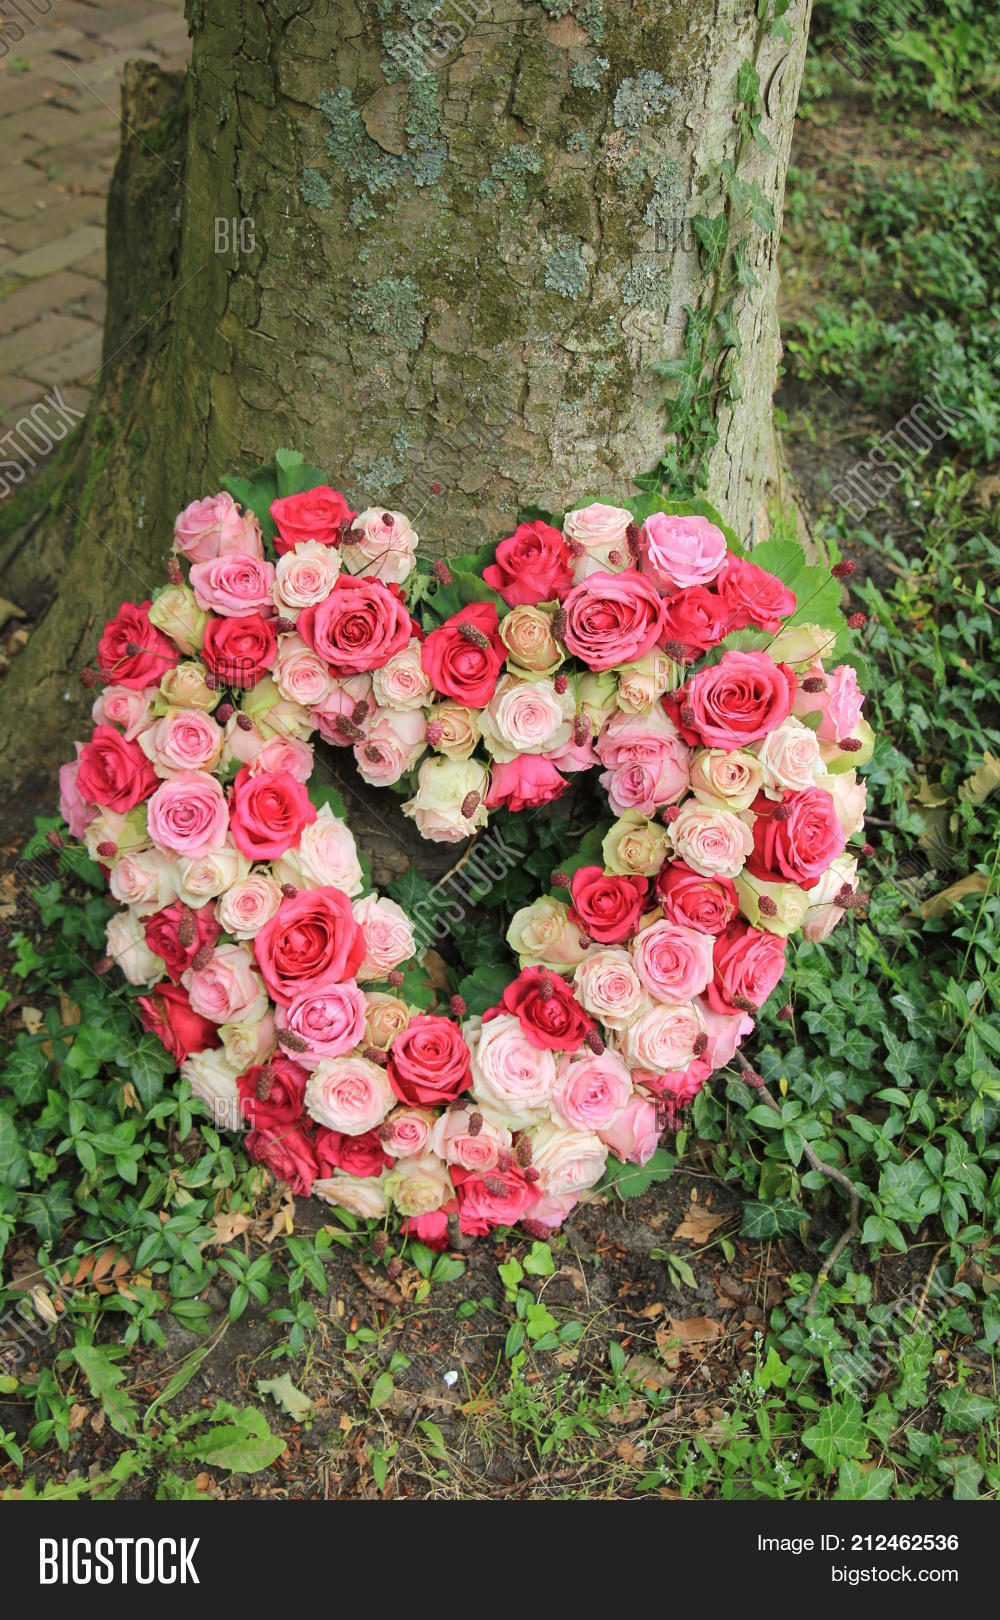 Heart shaped sympathy image photo free trial bigstock heart shaped sympathy flowers or funeral flowers near a tree izmirmasajfo